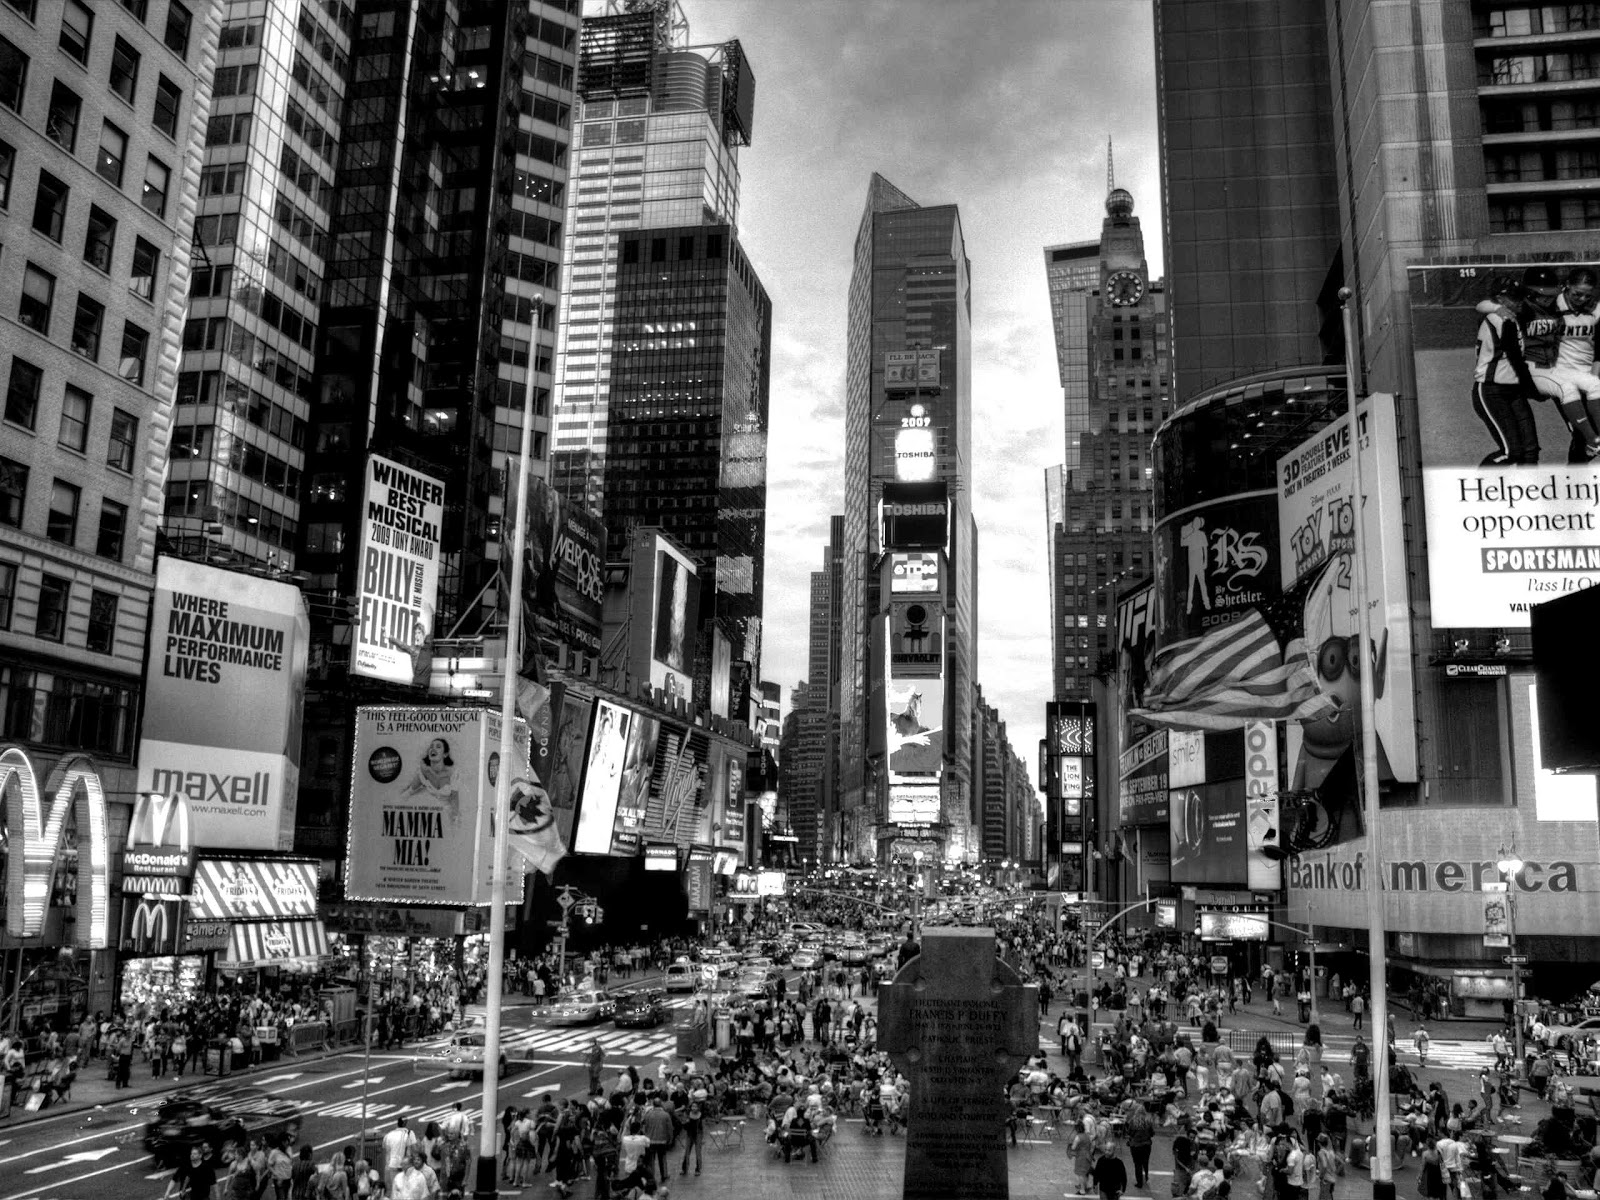 Times square New york city black and white photography